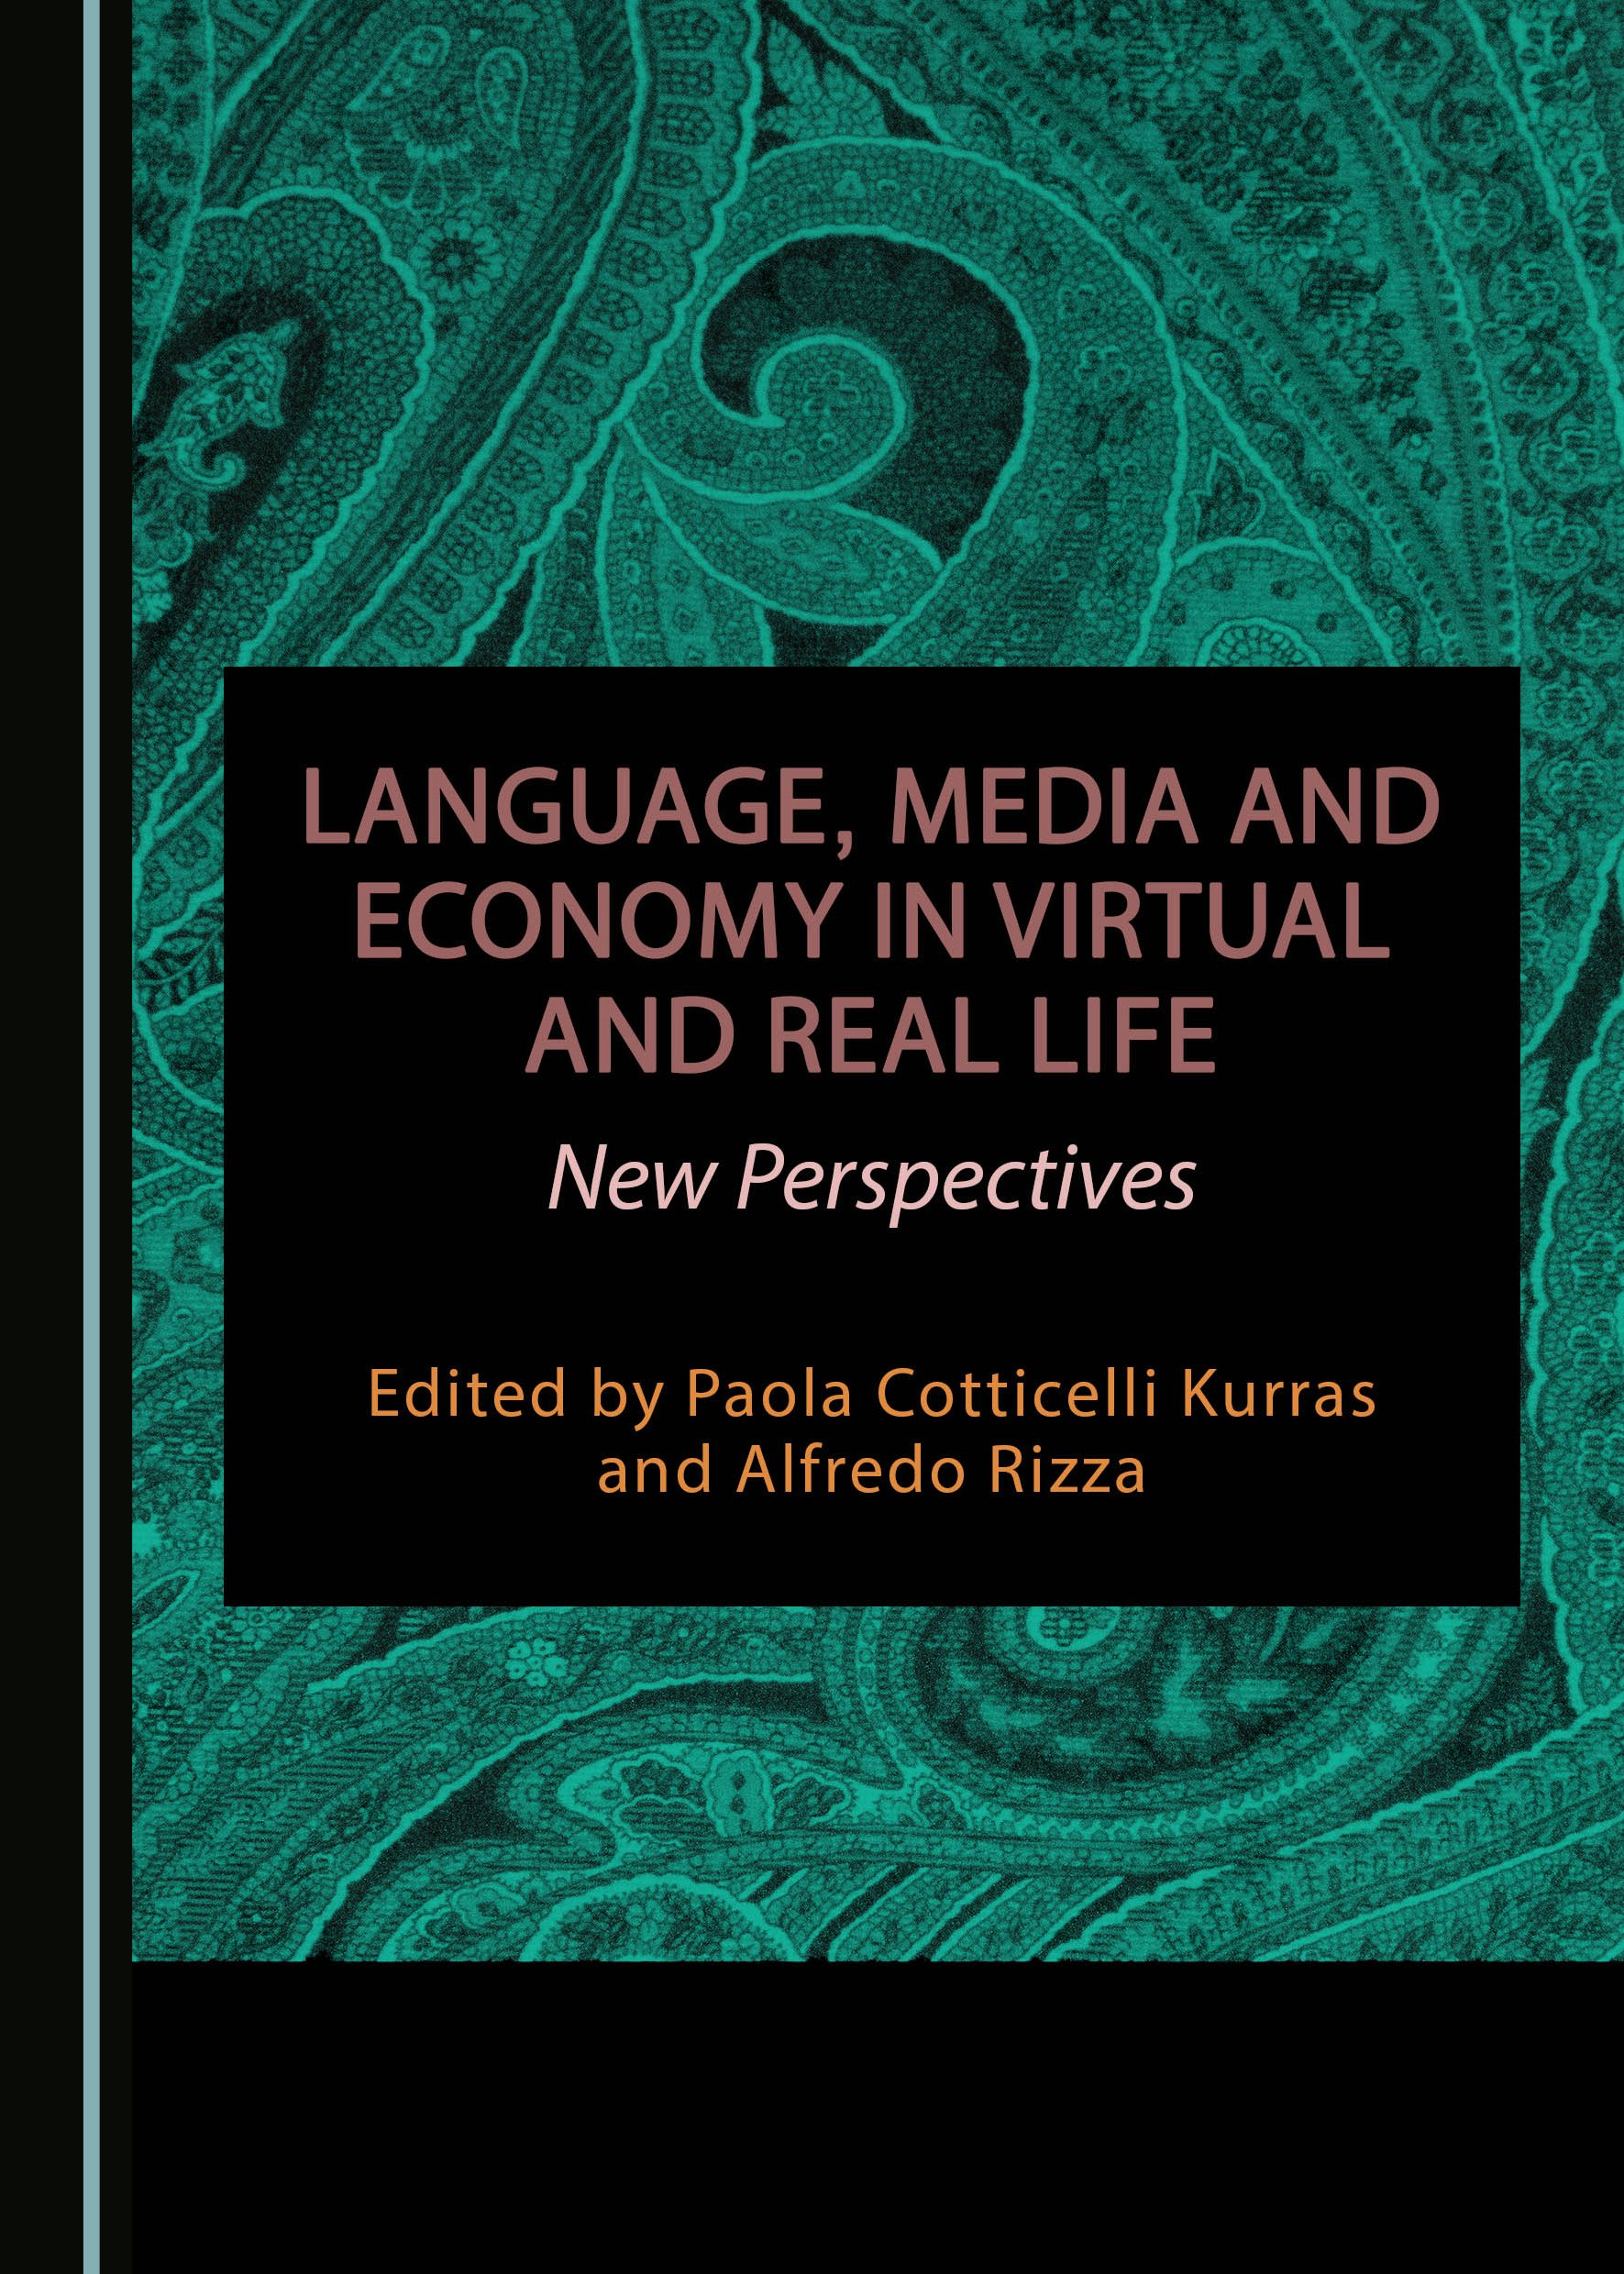 Language, Media and Economy in Virtual and Real Life: New Perspectives